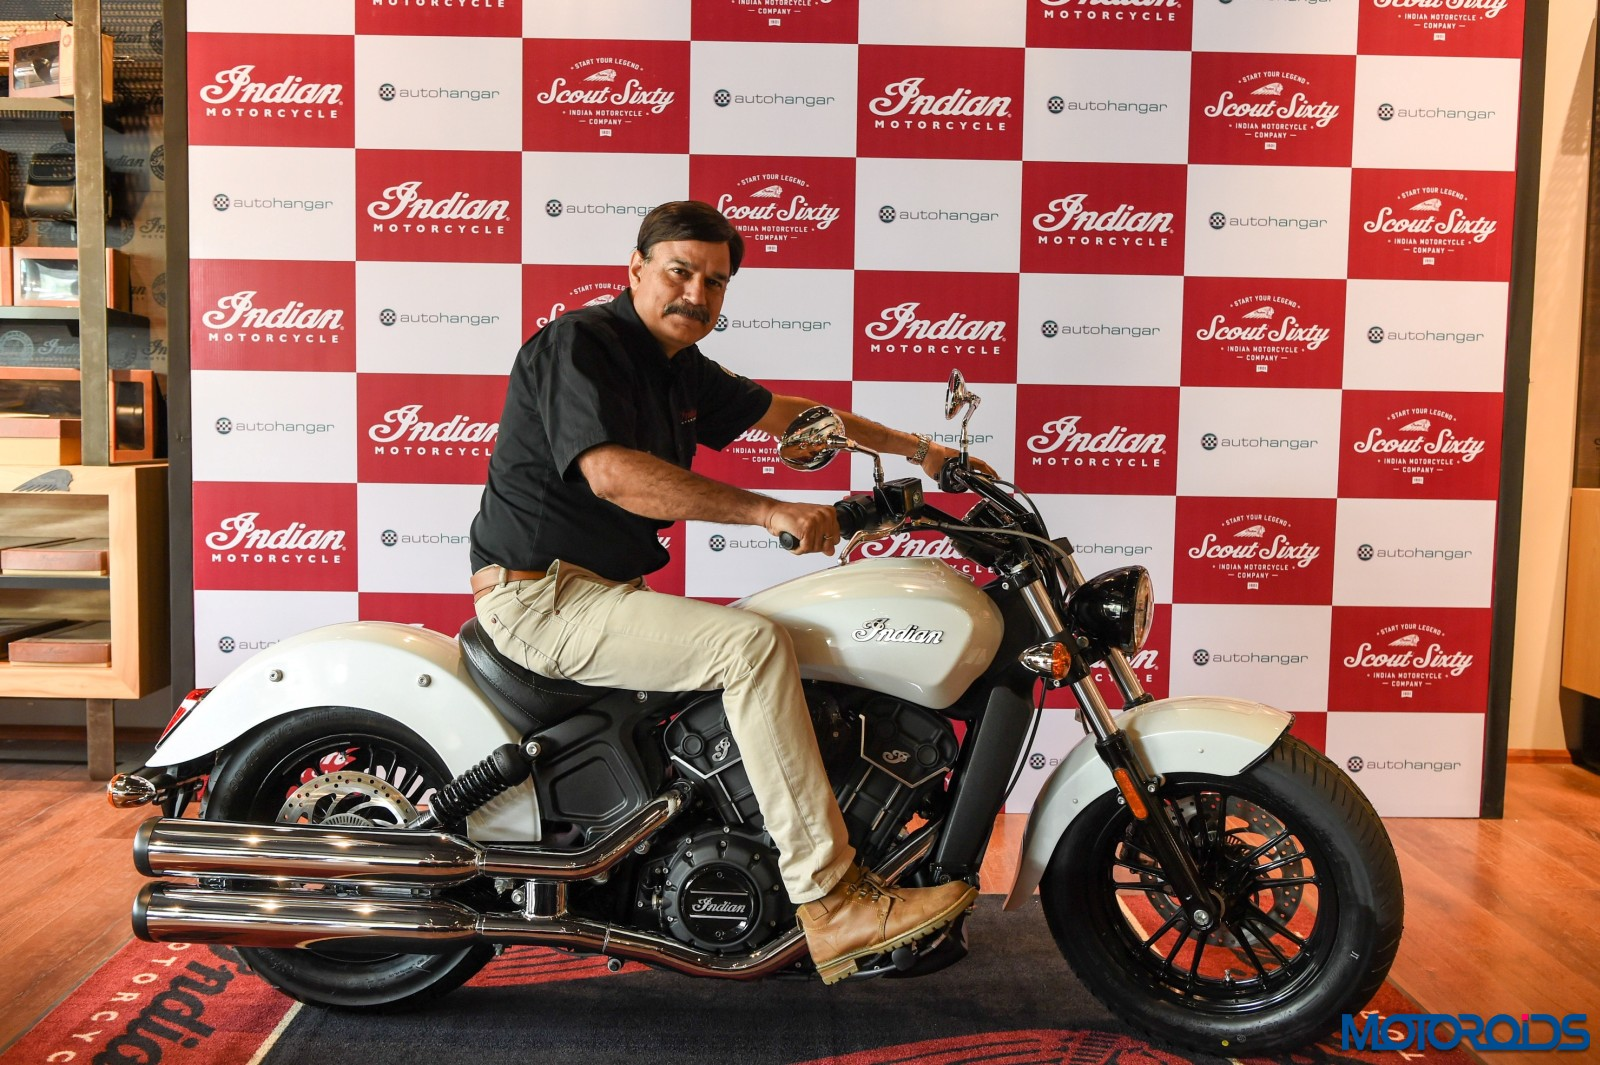 2016 Indian Scout Sixty from Indian Motorcycle launched in Mumbai (2)